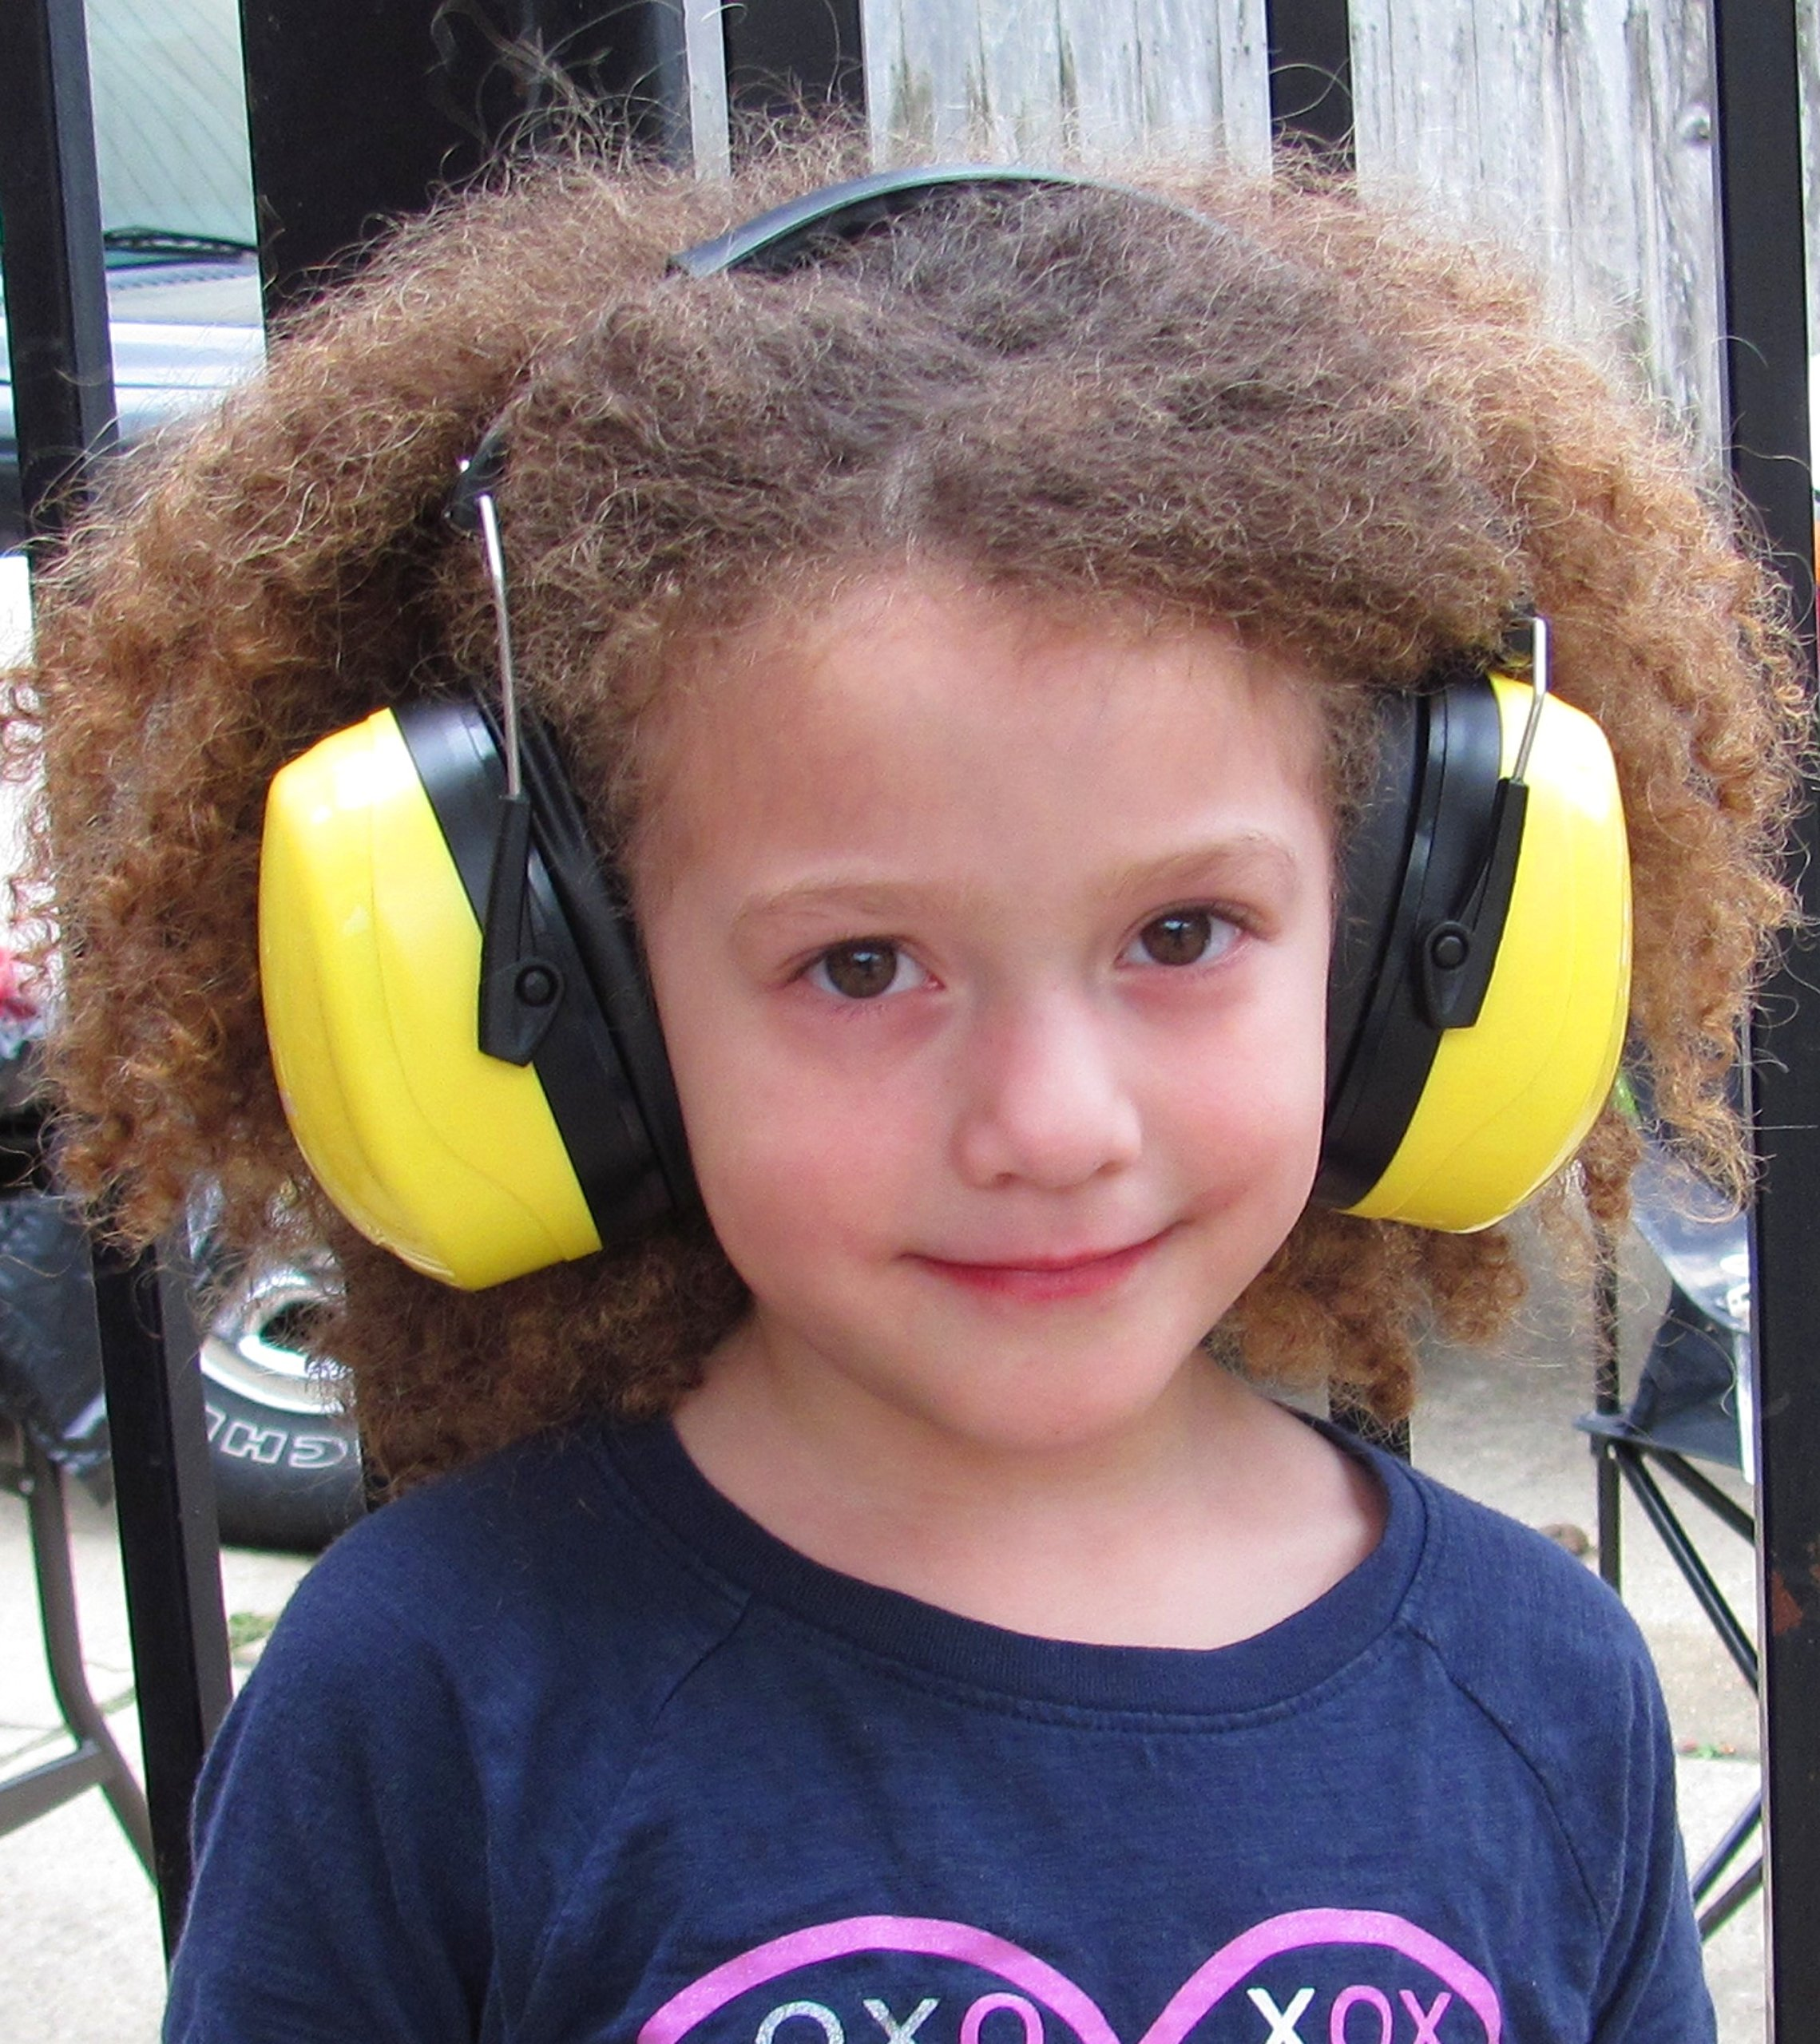 Sable & Steel Highest NRR 35db Safety Ear Muffs Auto Adjustable Earmuffs Shooters Hearing Protection Ear Muffs For Sports Outdoors Shooting Racing Work. Fits Adults Children.Yellow by Sable & Steel (Image #6)